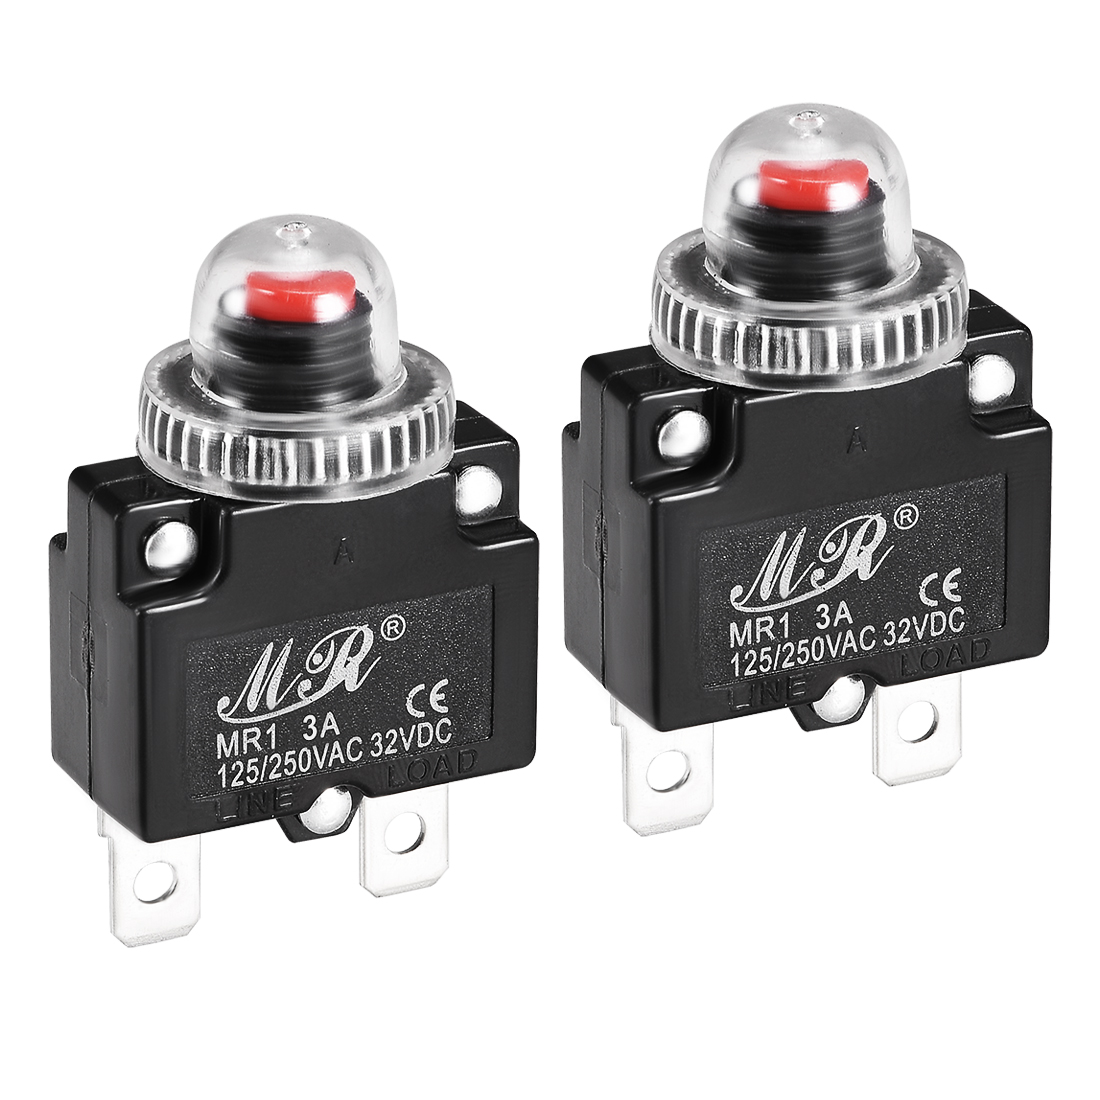 2 Pcs 3A 125/250V Push Button Reset Overload Protector Thermal Circuit Breaker